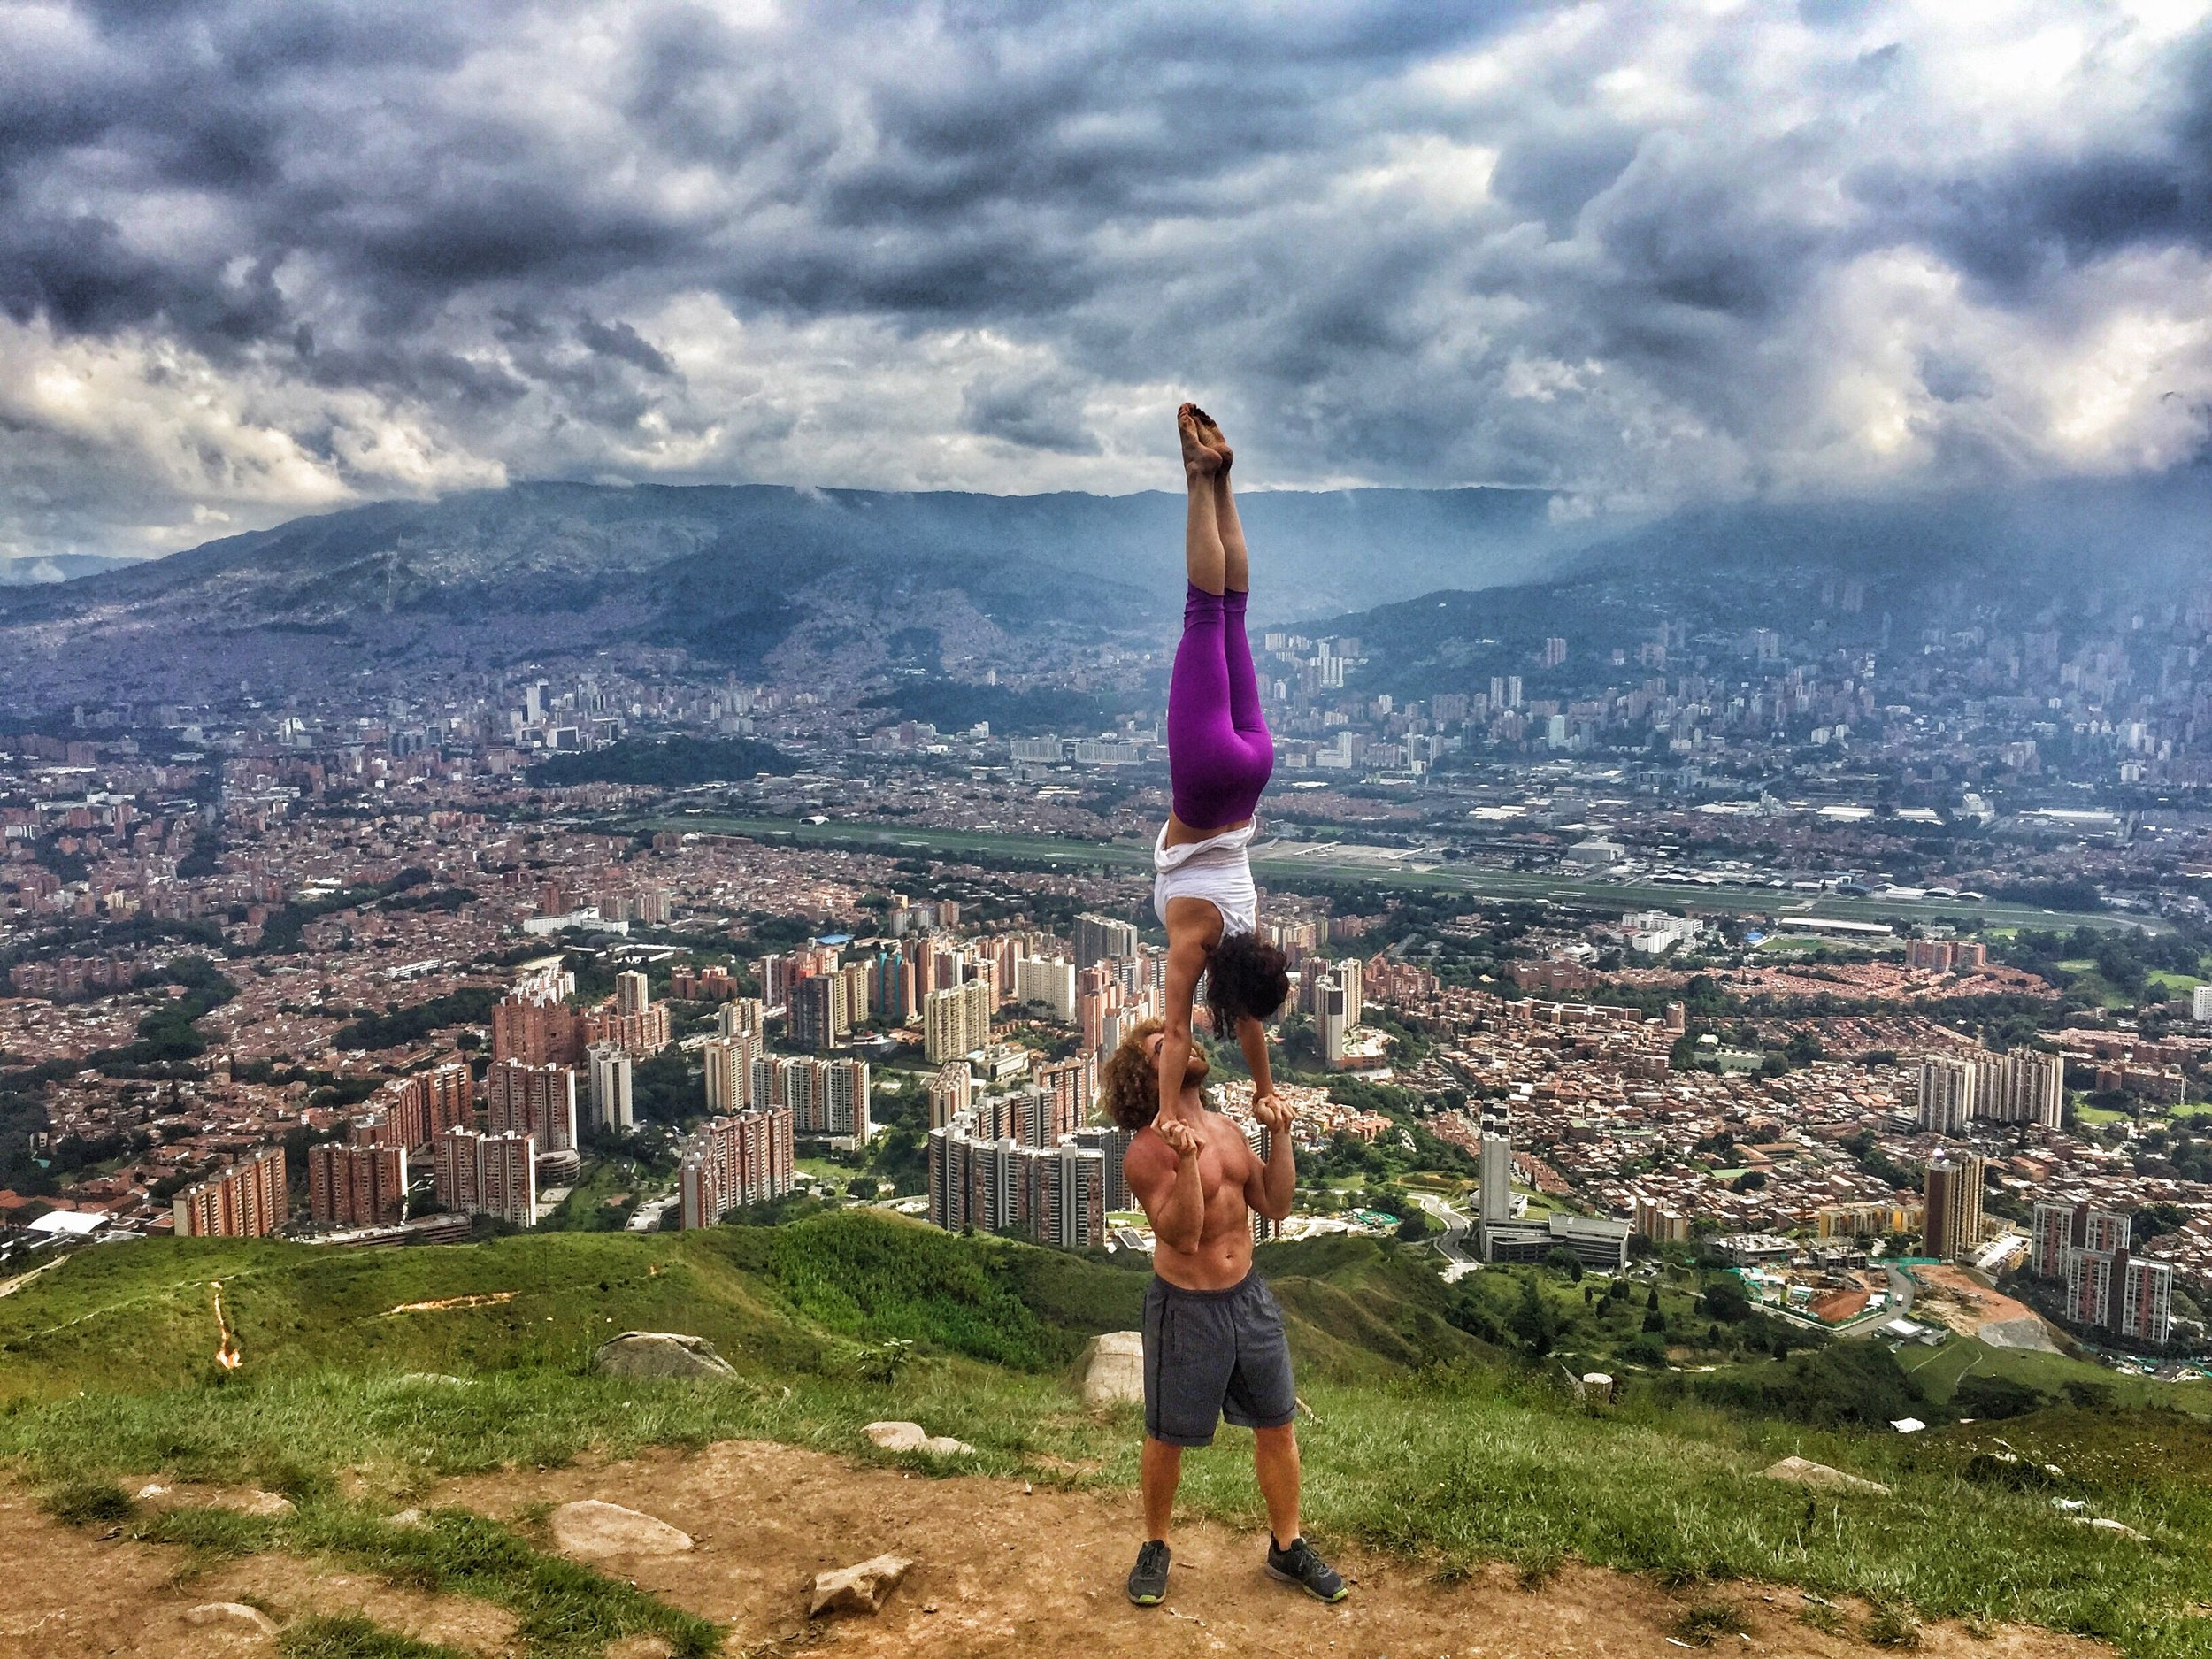 AcroYoga in the City 4